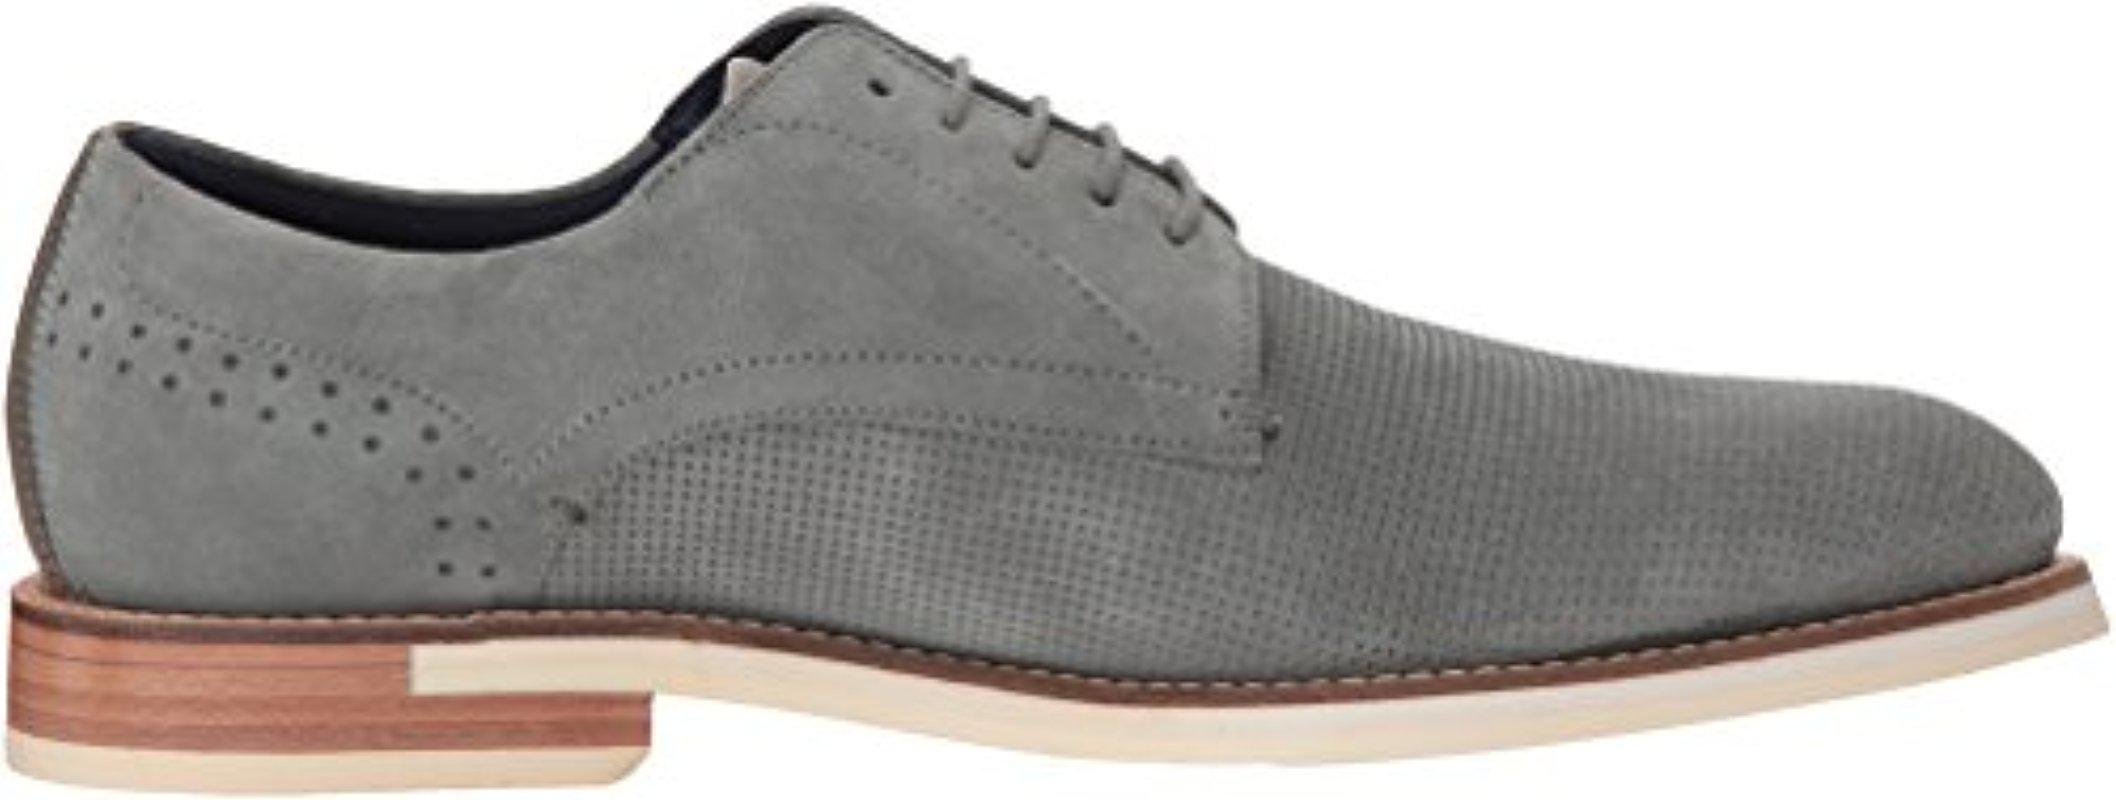 Ted Baker Lapiin Oxford in Grey Suede